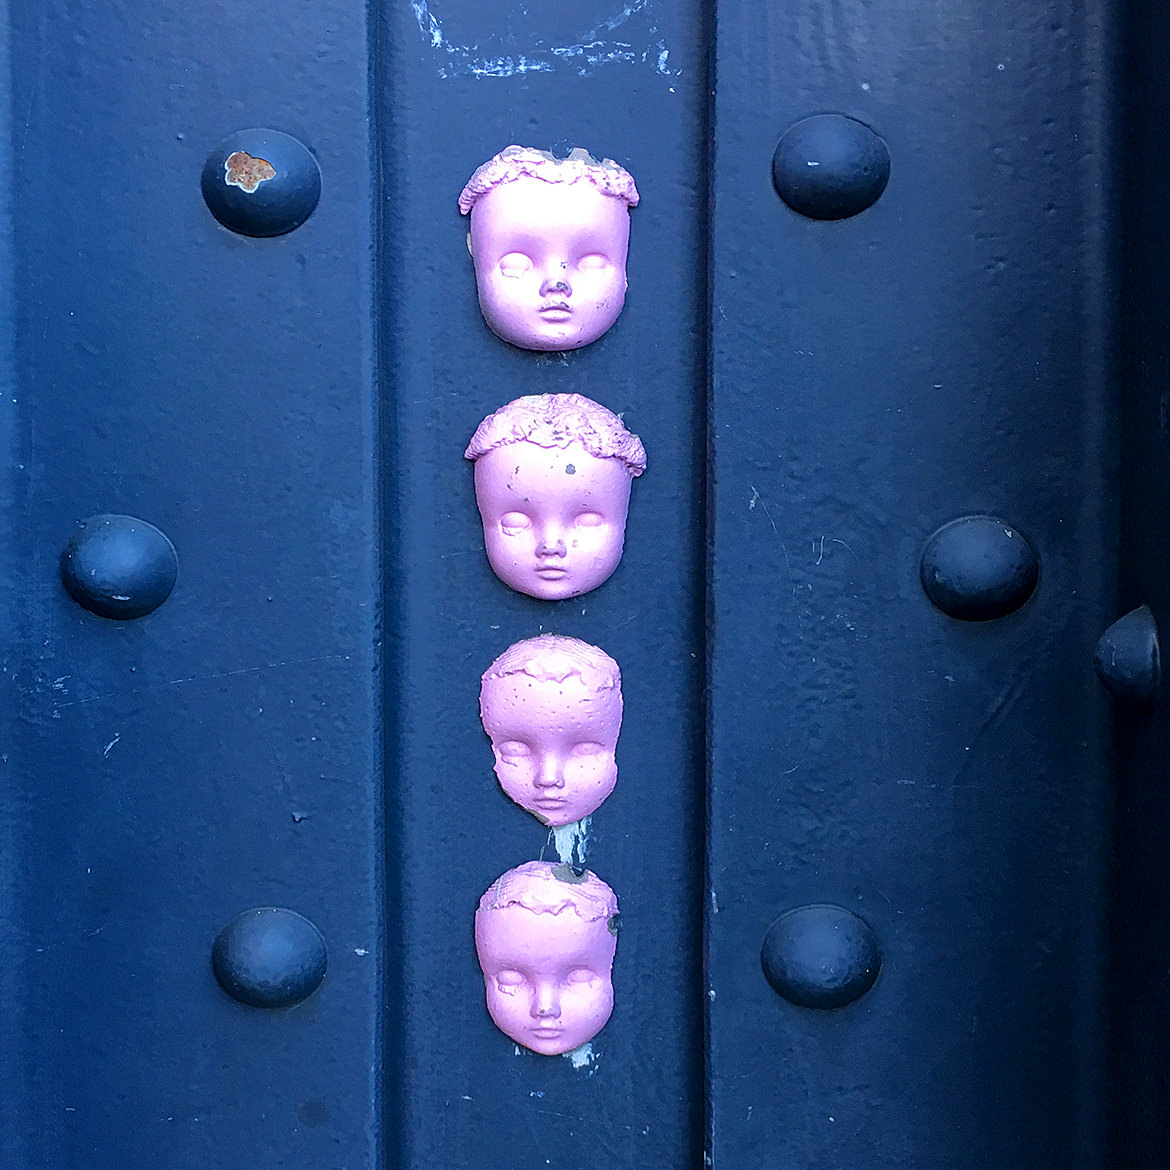 casts of doll faces stuck to a steel train support girder